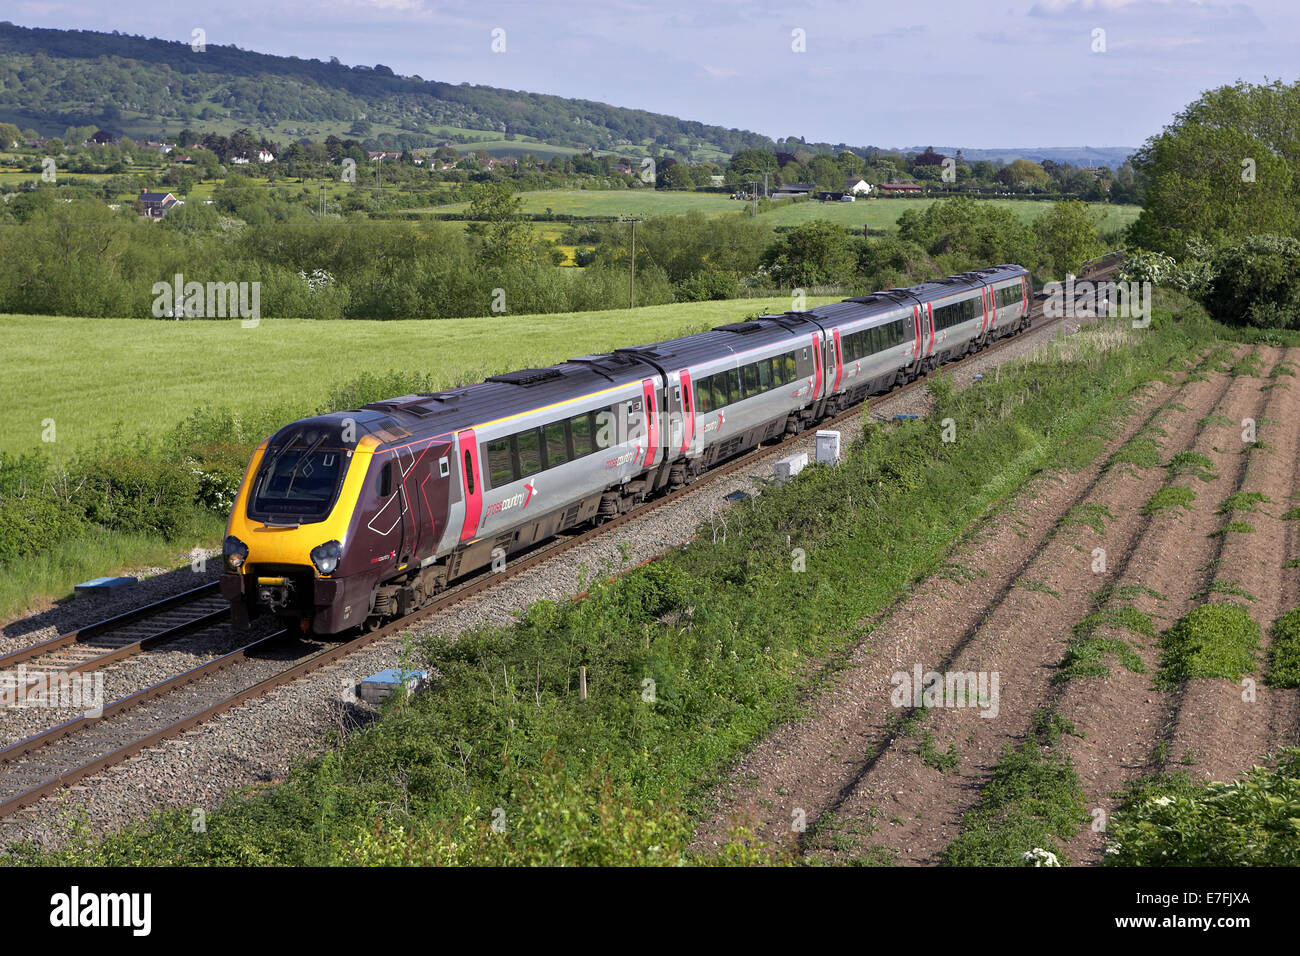 axc voyager heads north through defford, worcestershire with a plymouth - leeds service on 2/6/13. - Stock Image